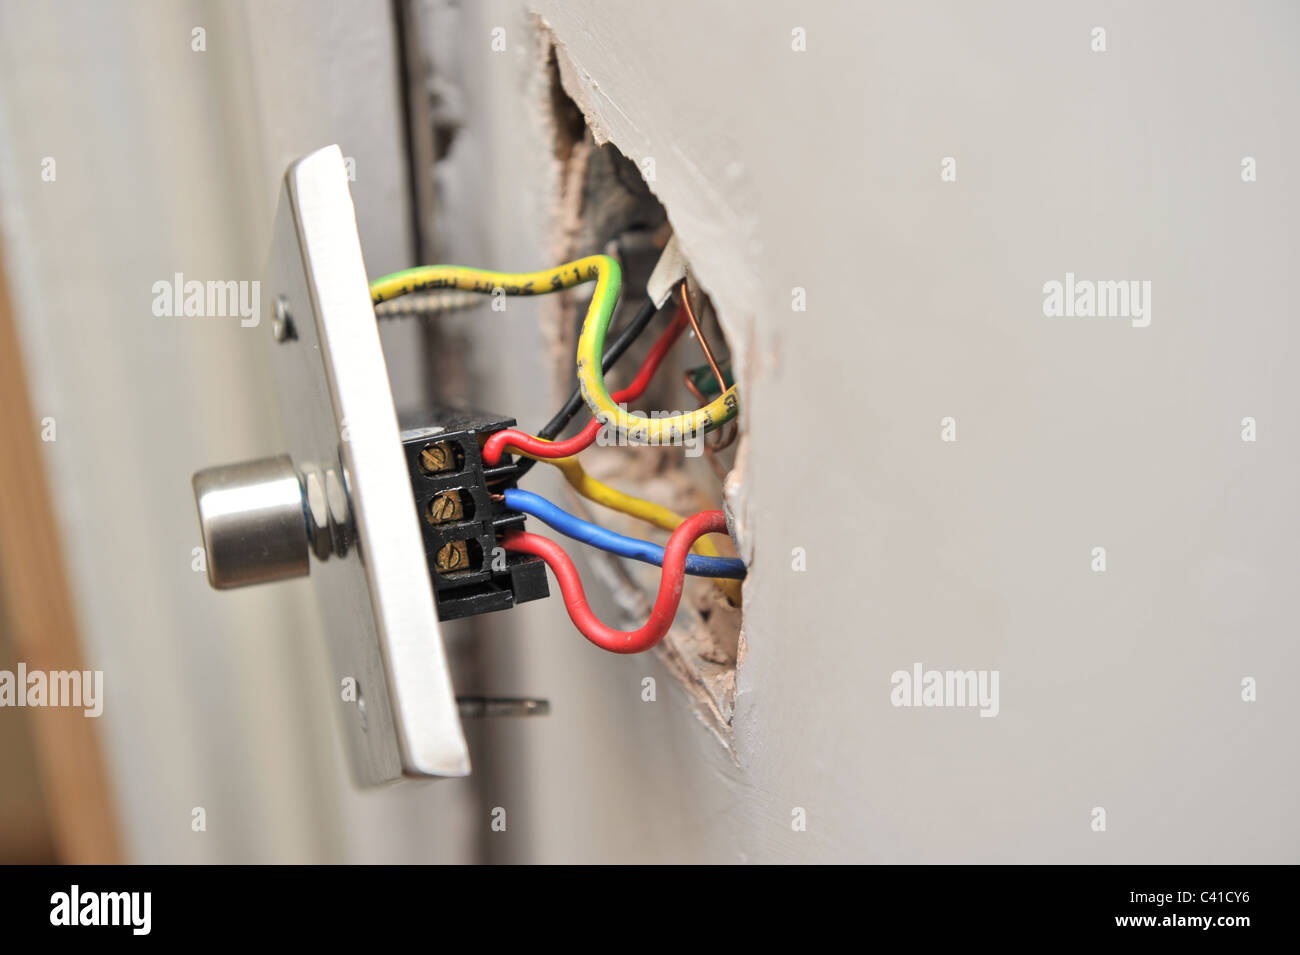 Electrician Wiring Light Switch Stockfotos & Electrician Wiring ...